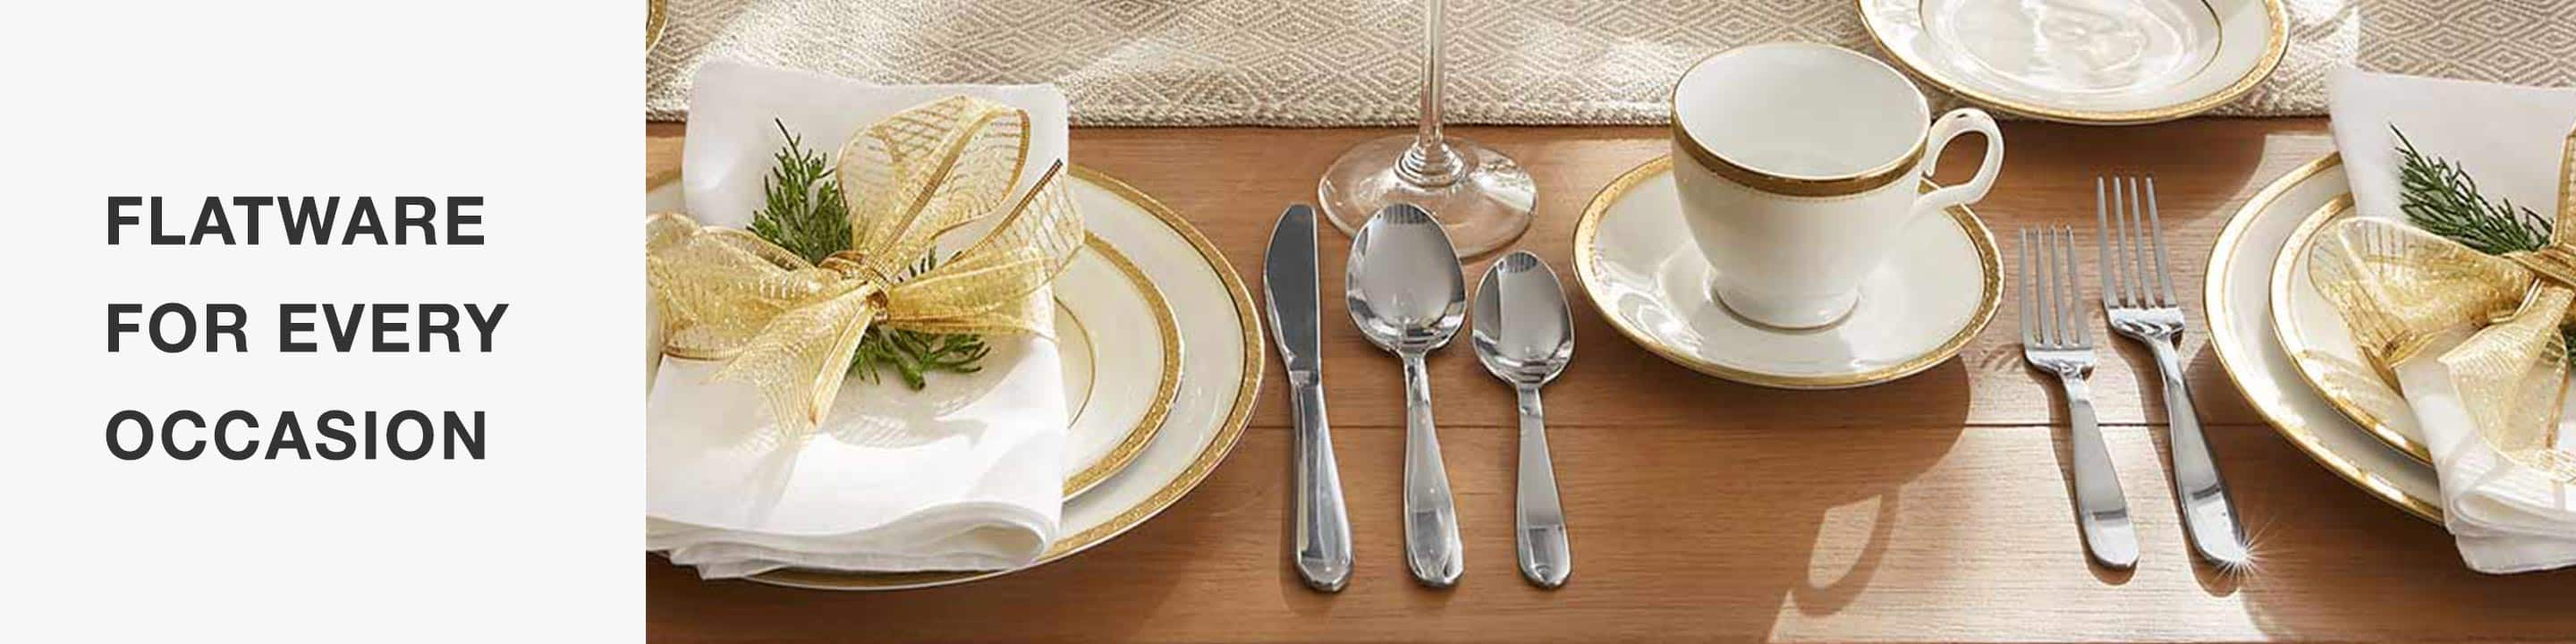 Flatware for Every Occasion